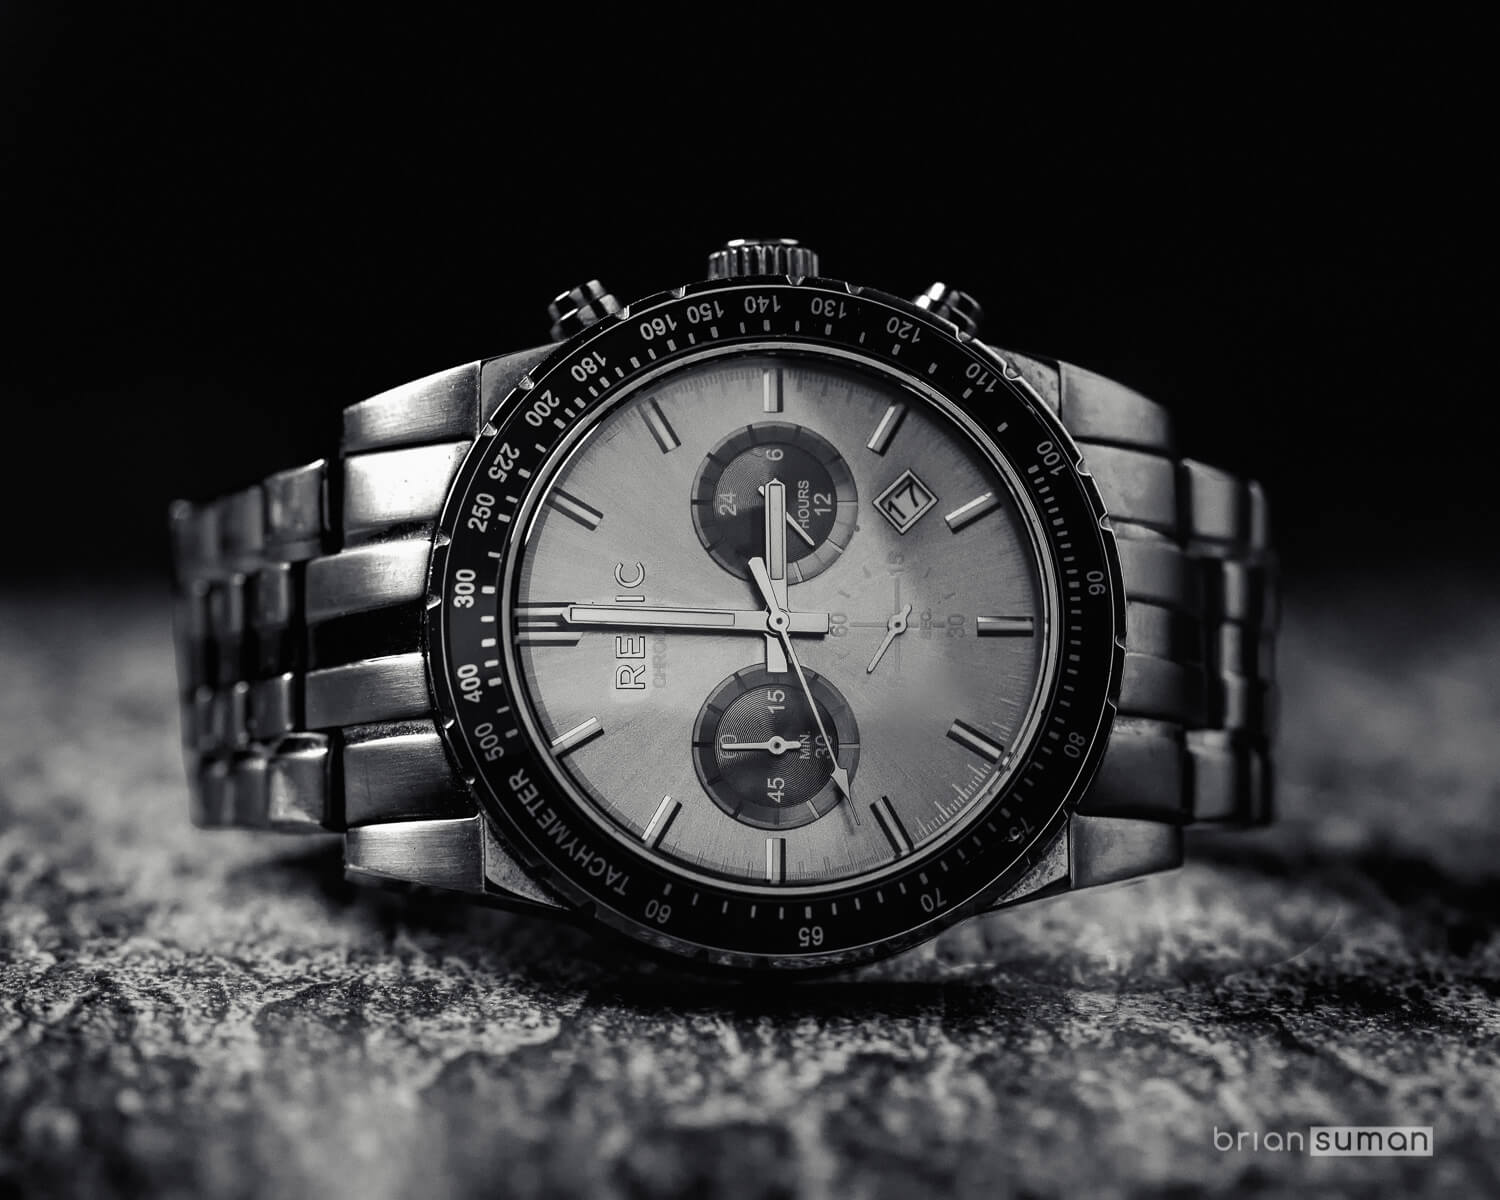 Relic watch-0001-Brian Suman Photography.jpg